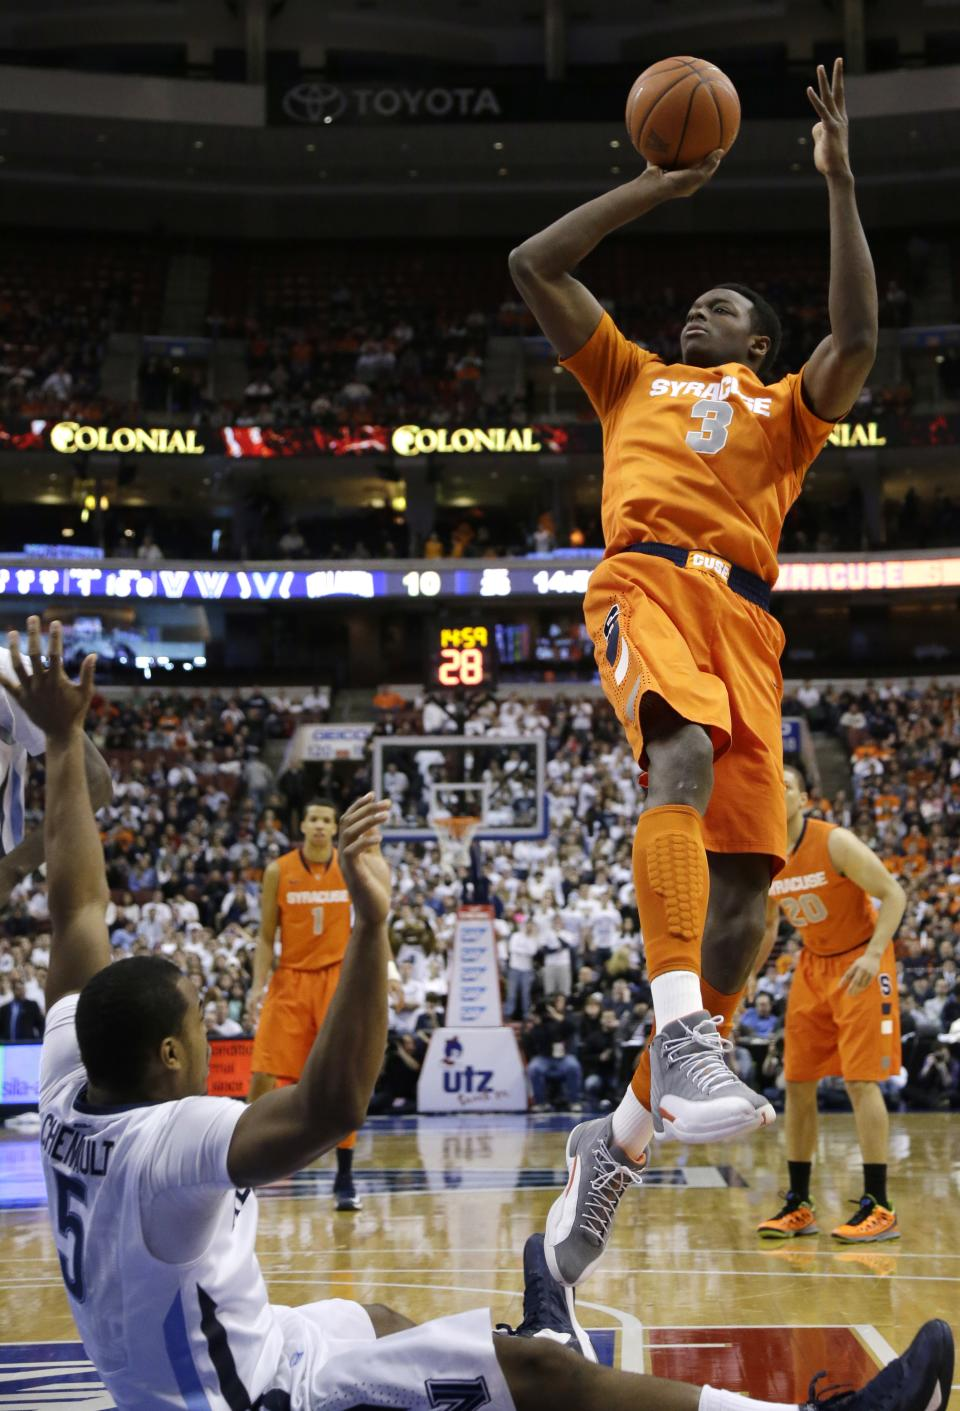 Syracuse's Jerami Grant, right, goes up for a shot against Villanova's Tony Chennault during the first half of an NCAA college basketball game, Saturday, Jan. 26, 2013, in Philadelphia. (AP Photo/Matt Slocum)